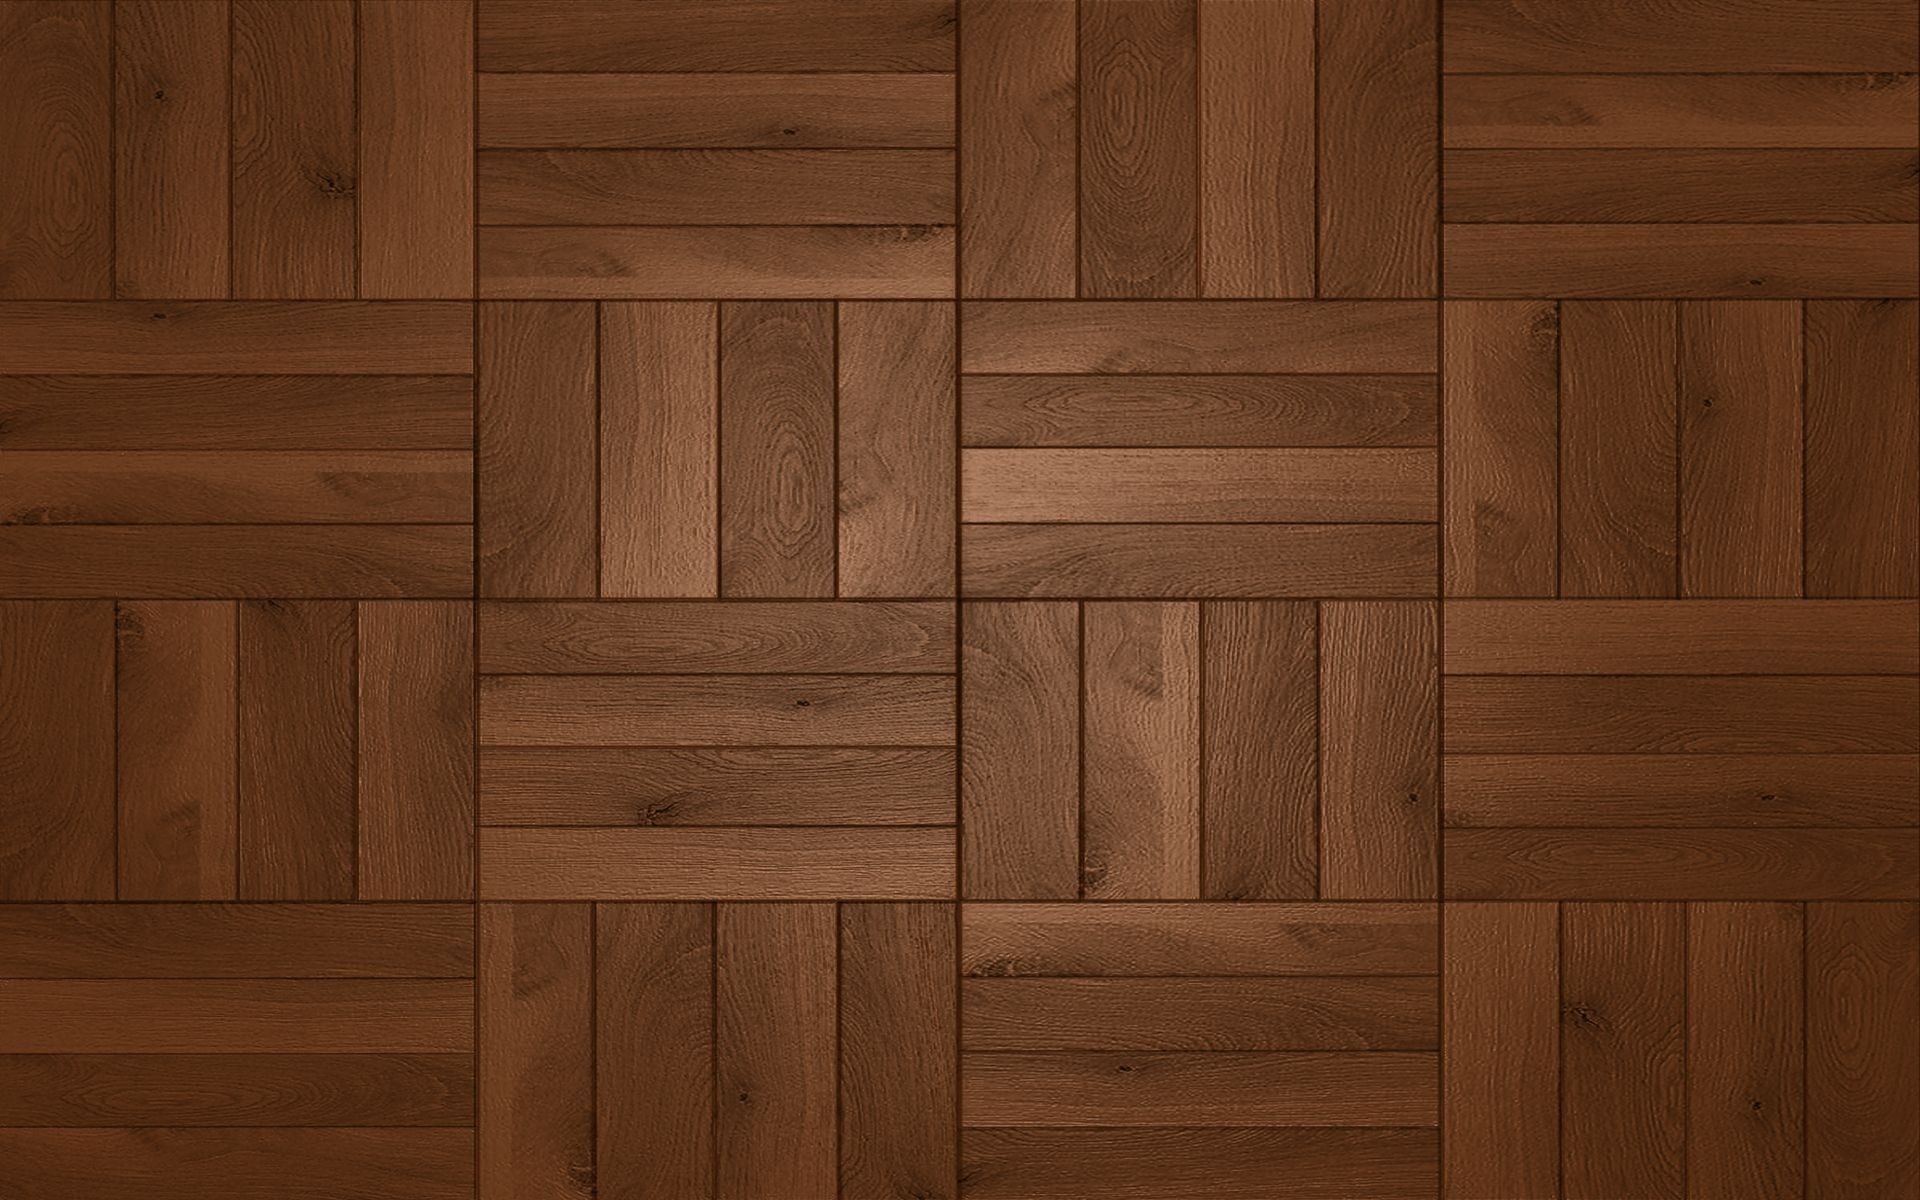 Wood Hd Wallpaper - Wood Texture Hd (# 135746) - Descargar fondo de pantalla HD